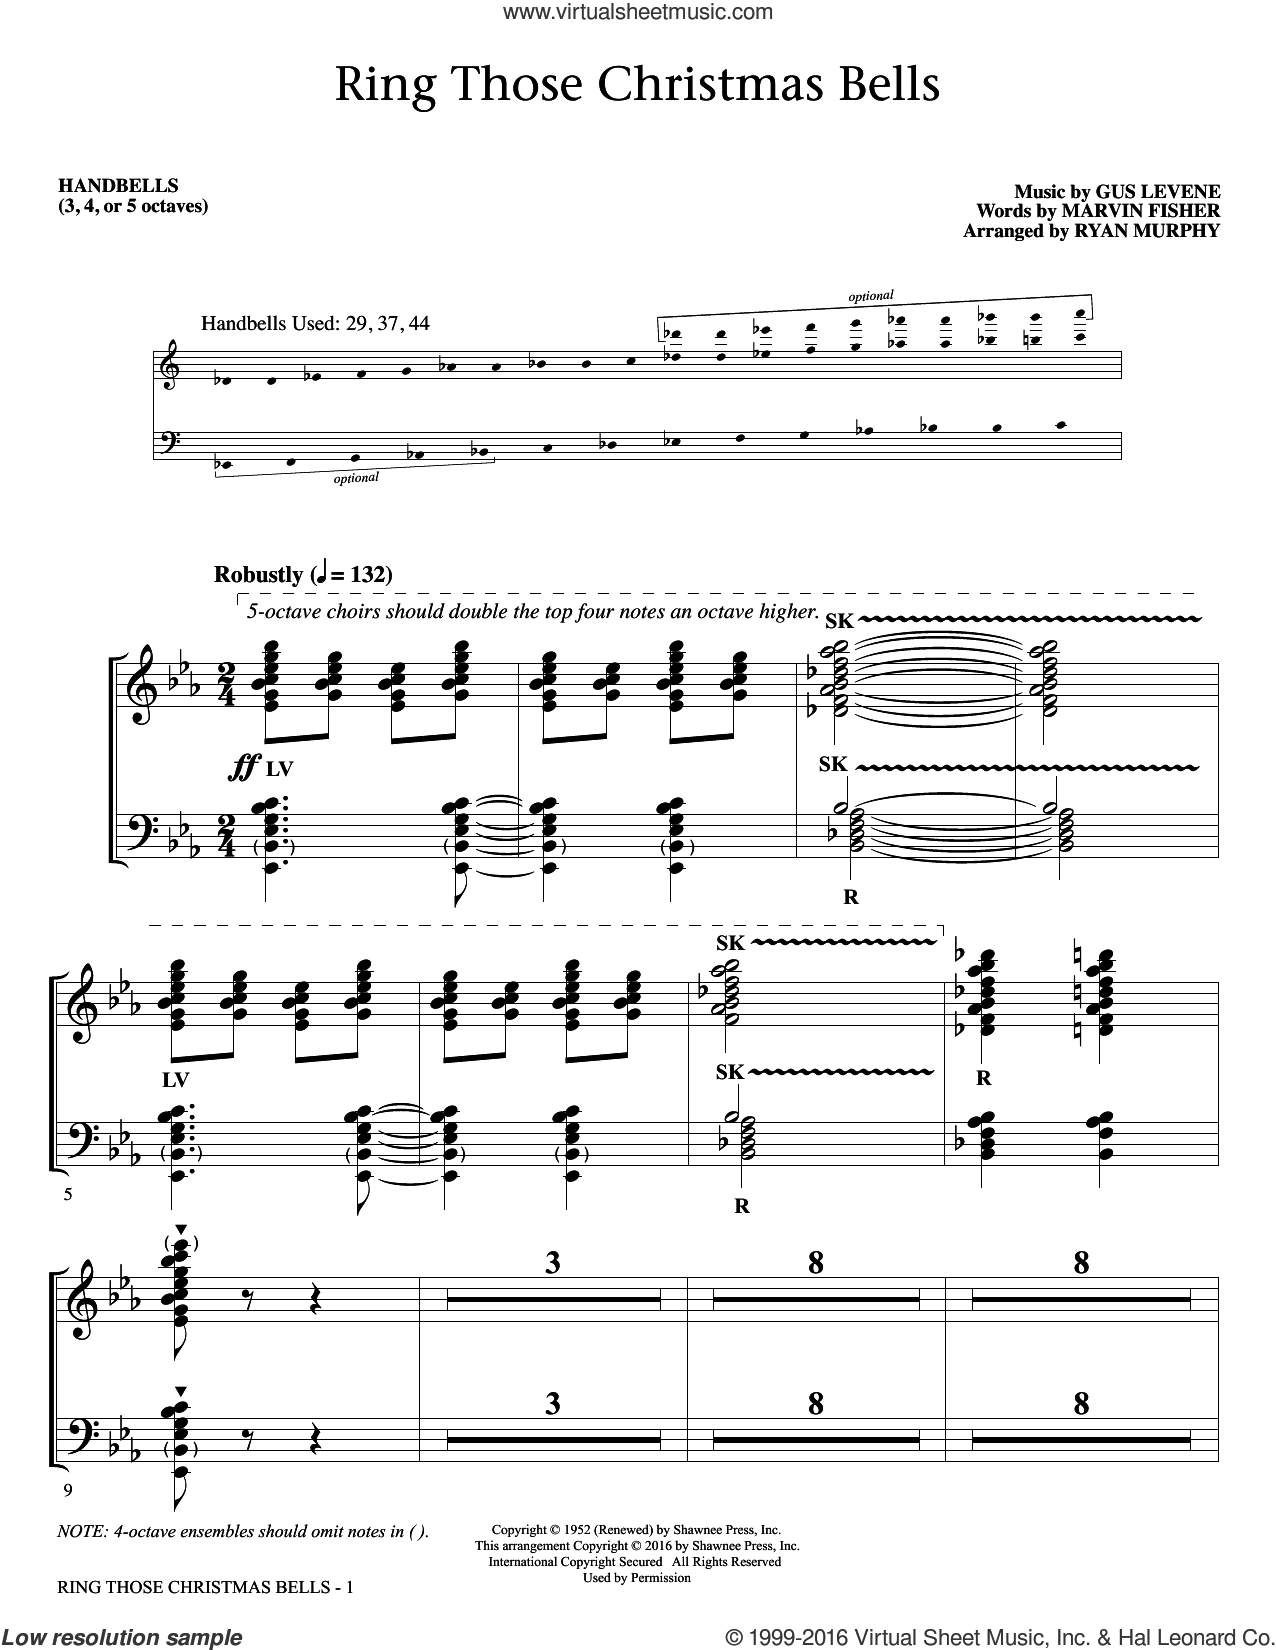 Ring Those Christmas Bells sheet music for orchestra/band (handbells) by Marvin Fisher and Peggy Lee. Score Image Preview.